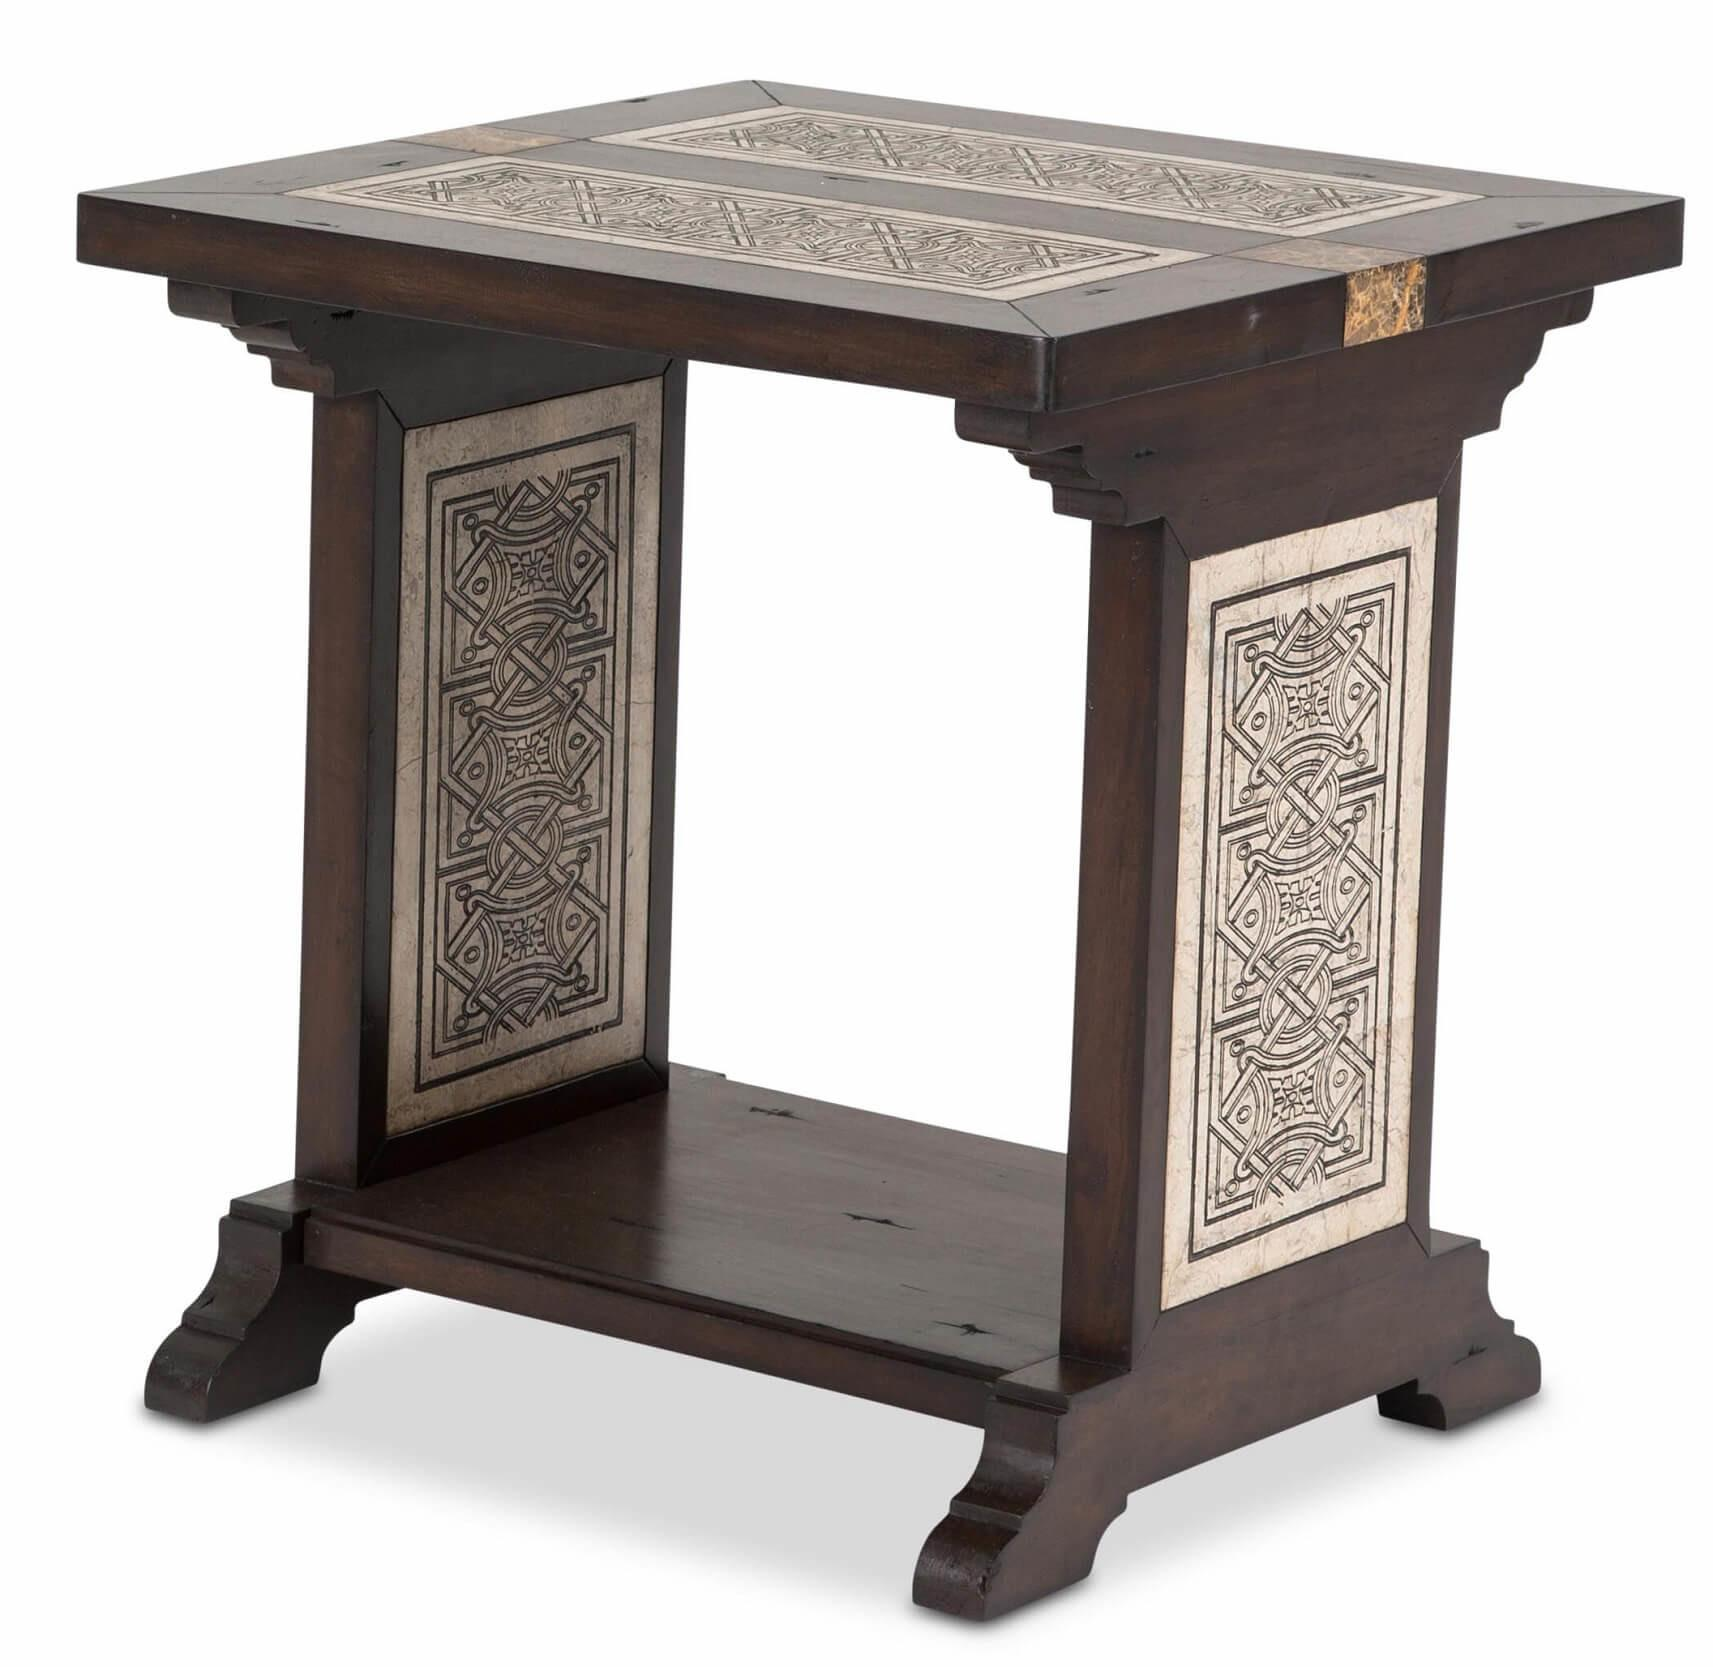 Paz Square End Table Stone Etched Inlay Aico